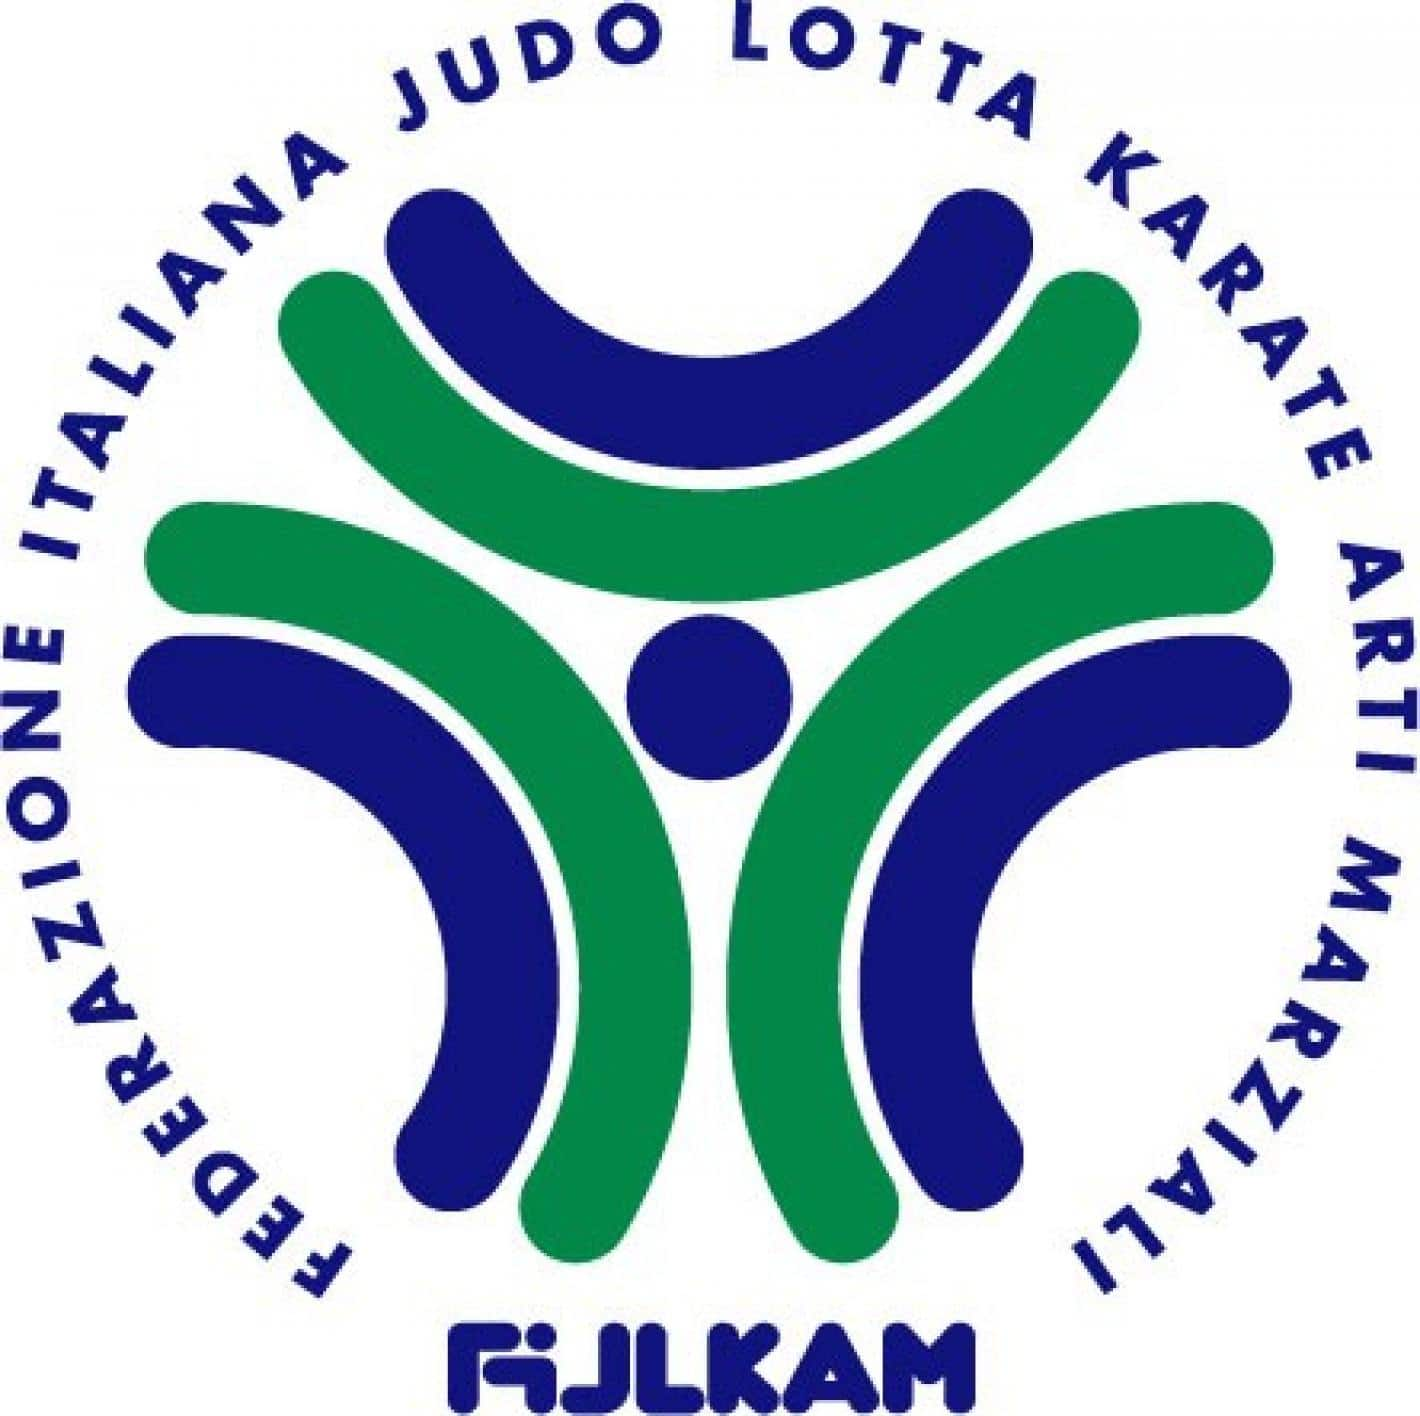 https://rarinantesalbano.it/wp-content/uploads/2019/11/federazione_judo.jpg